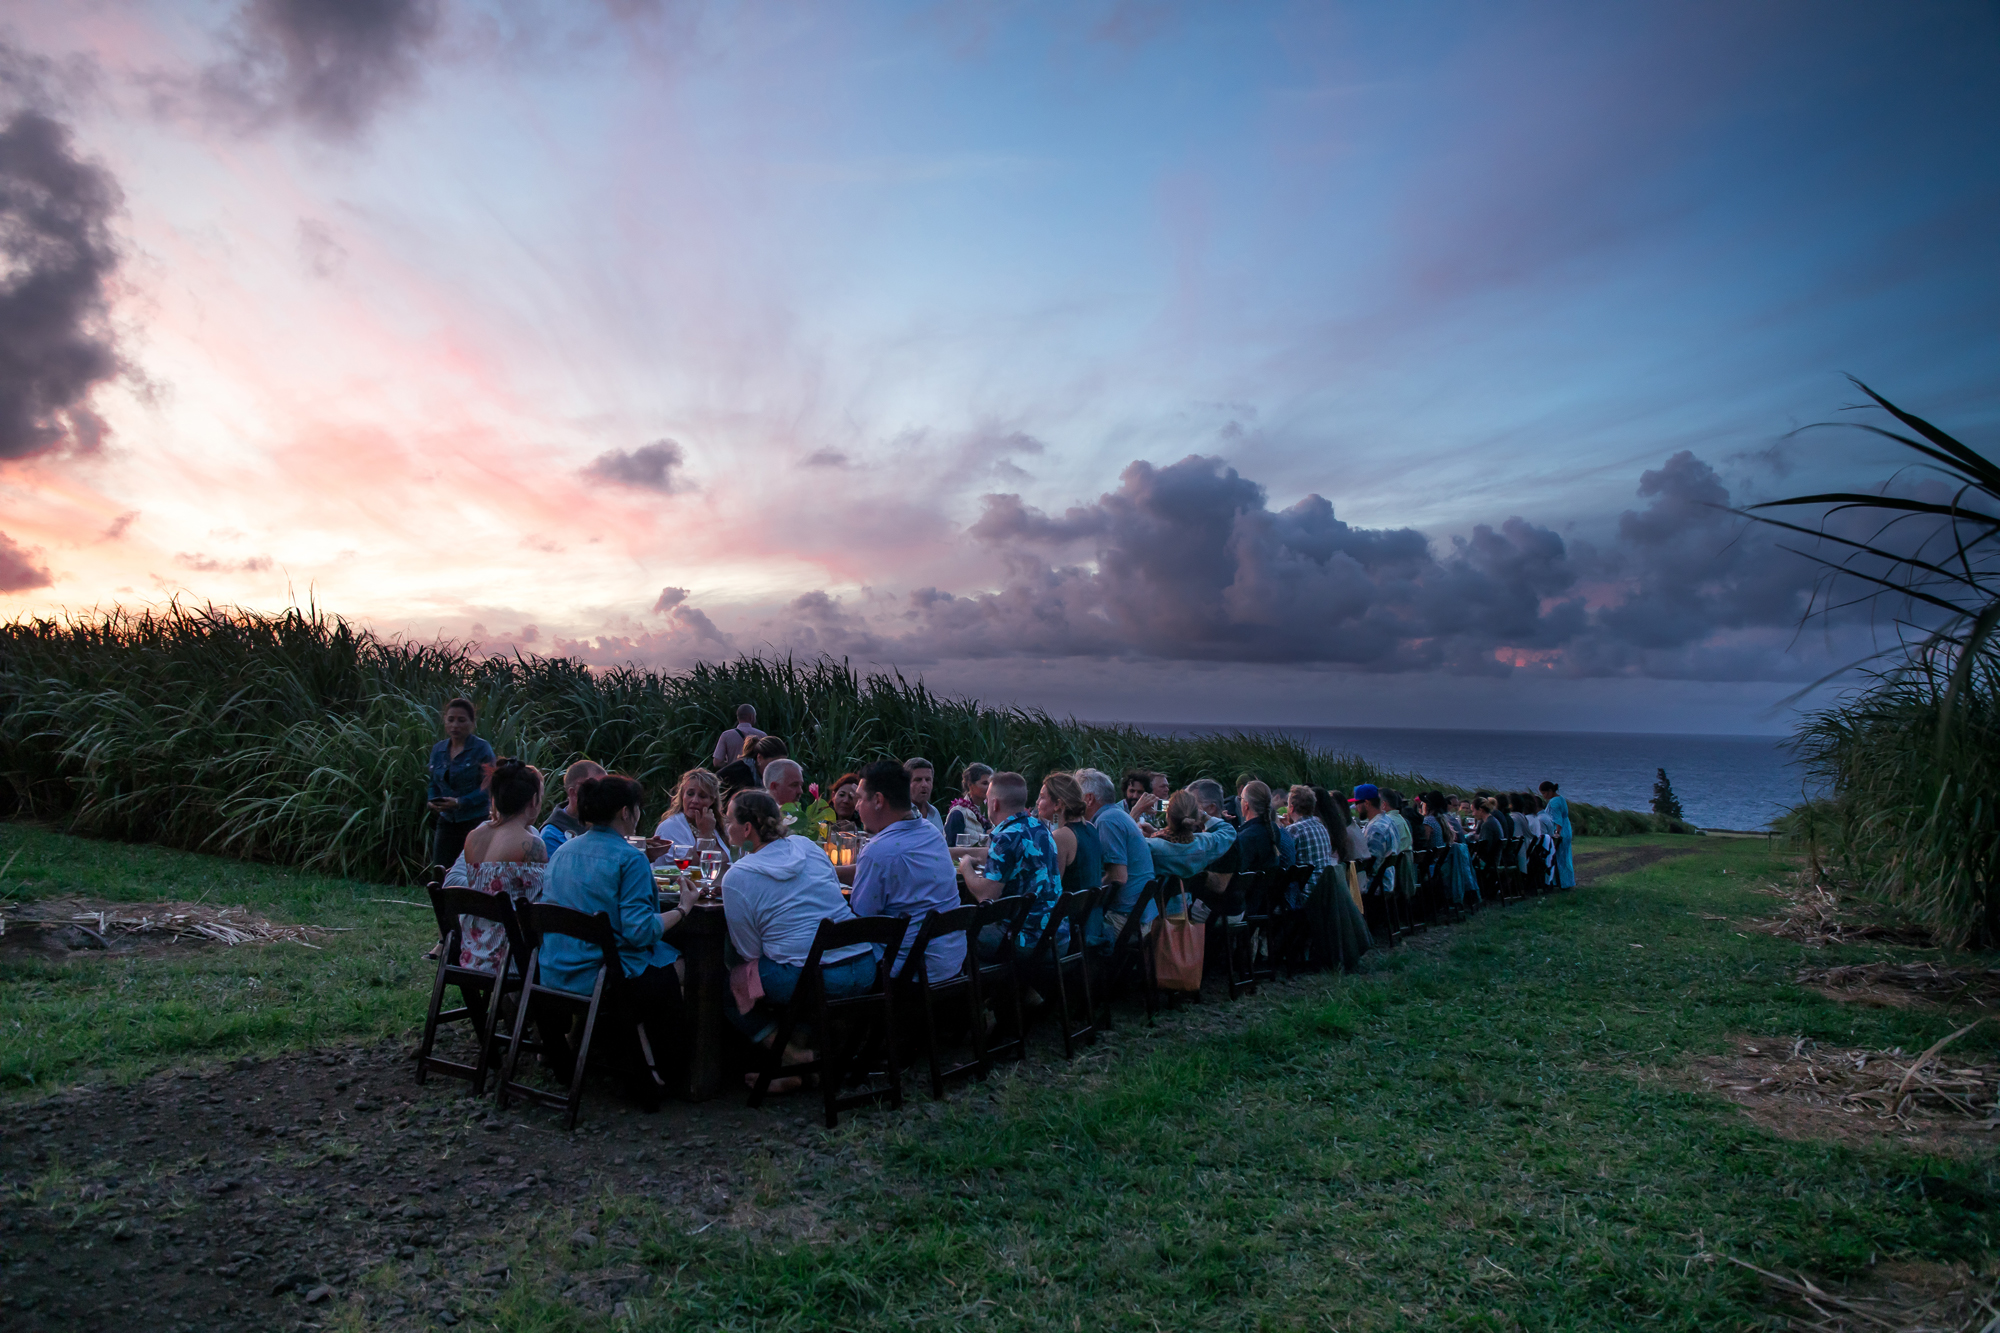 SecretSupper_Hawaii_March2019_0167_photocreditCarlyDiaz.jpg